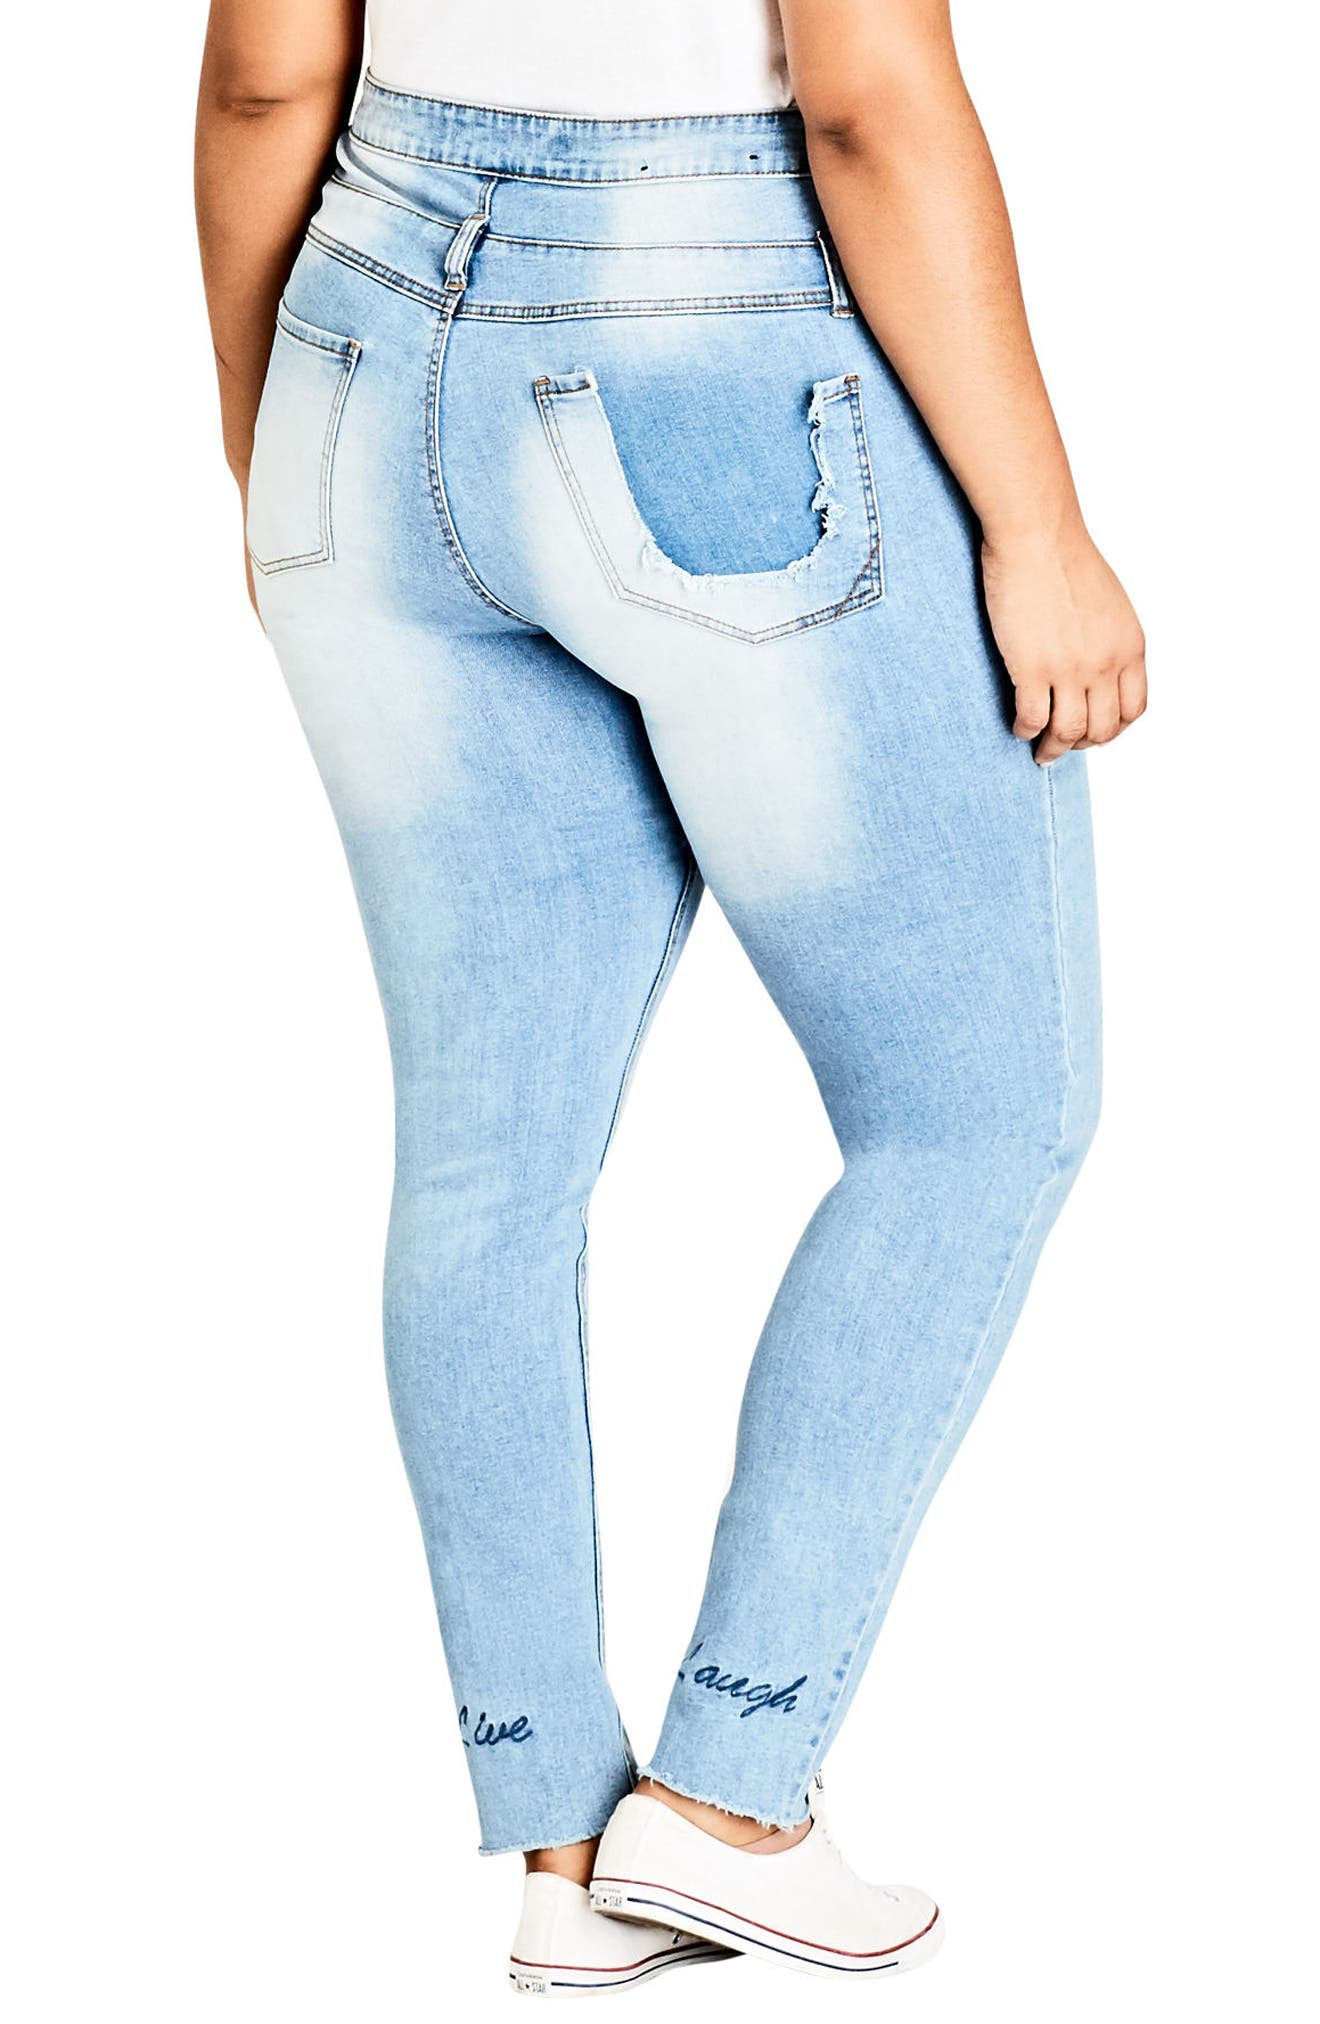 Alternate Image 2  - City Chic Harley Vibes Ripped Corset Skinny Jeans (Plus Size)